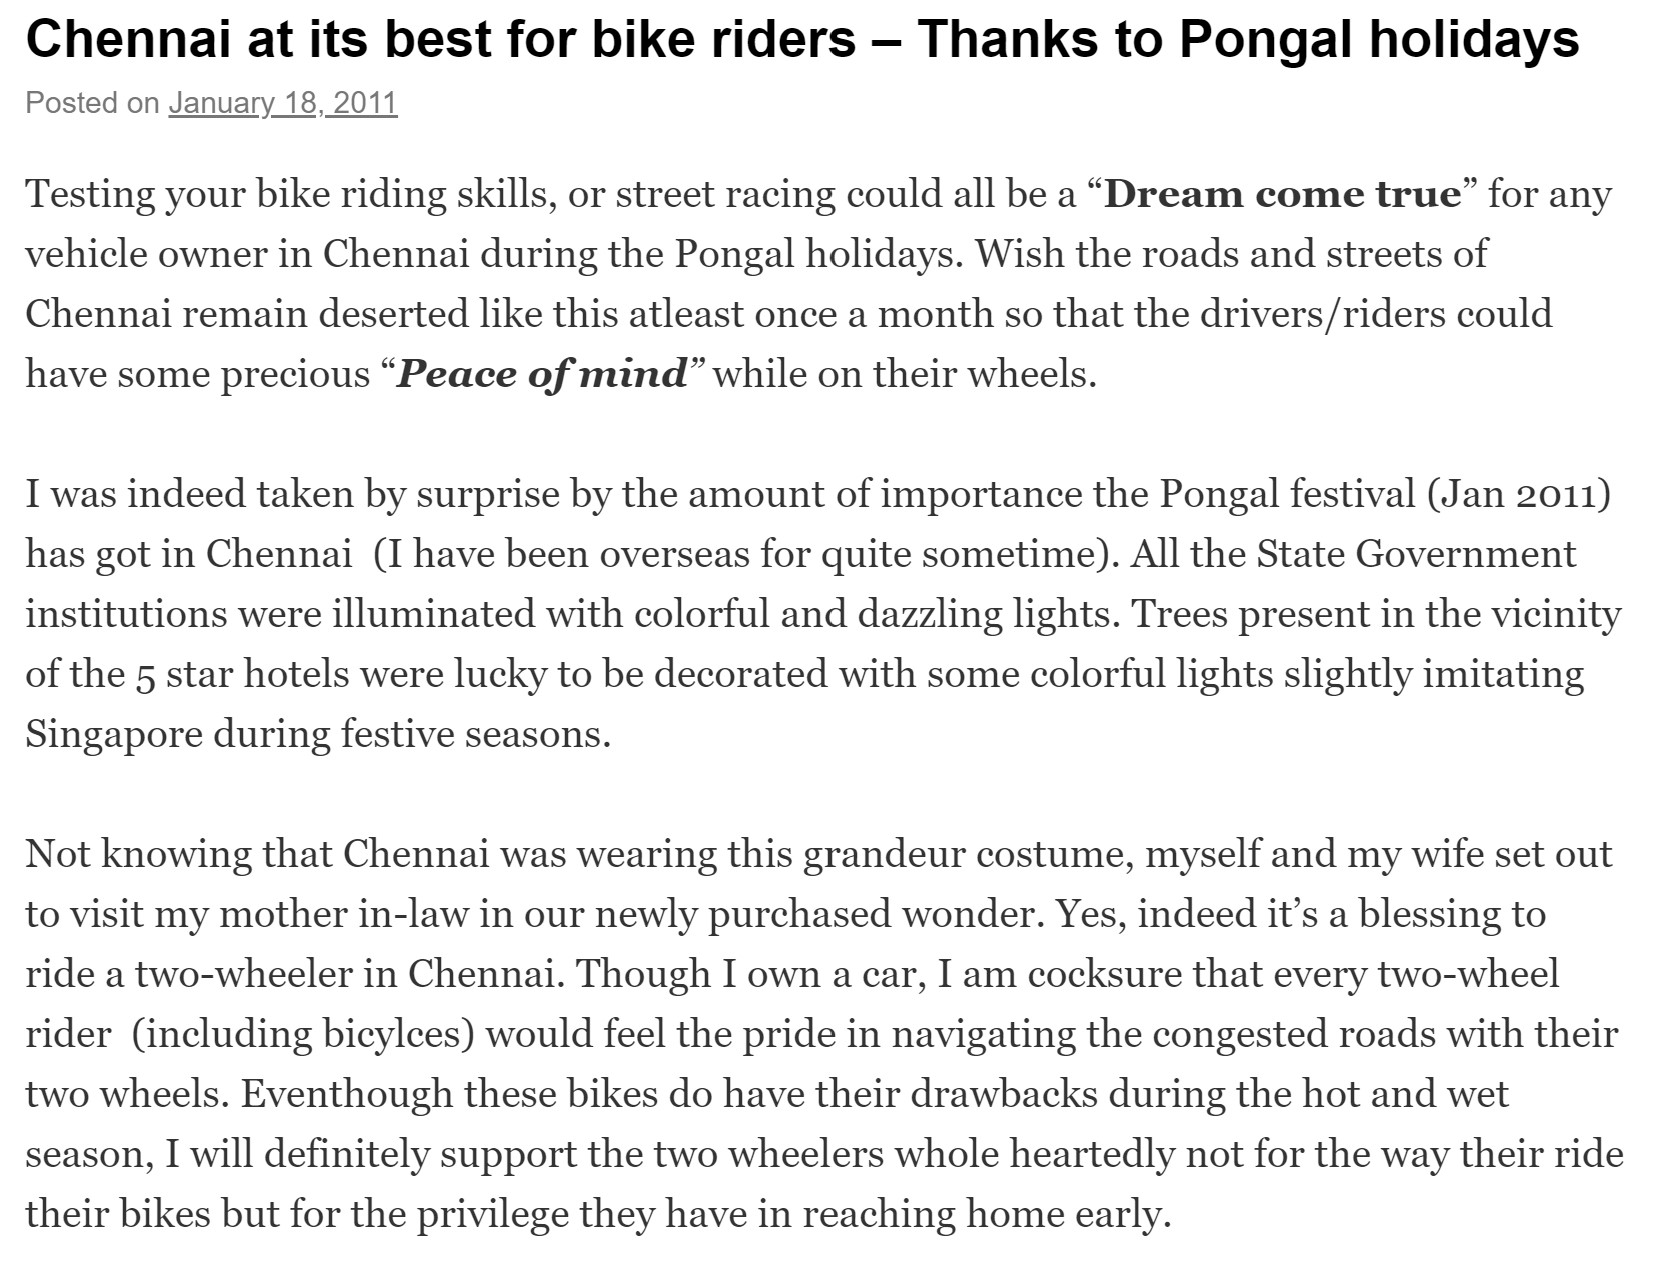 Chennai best for bike riders